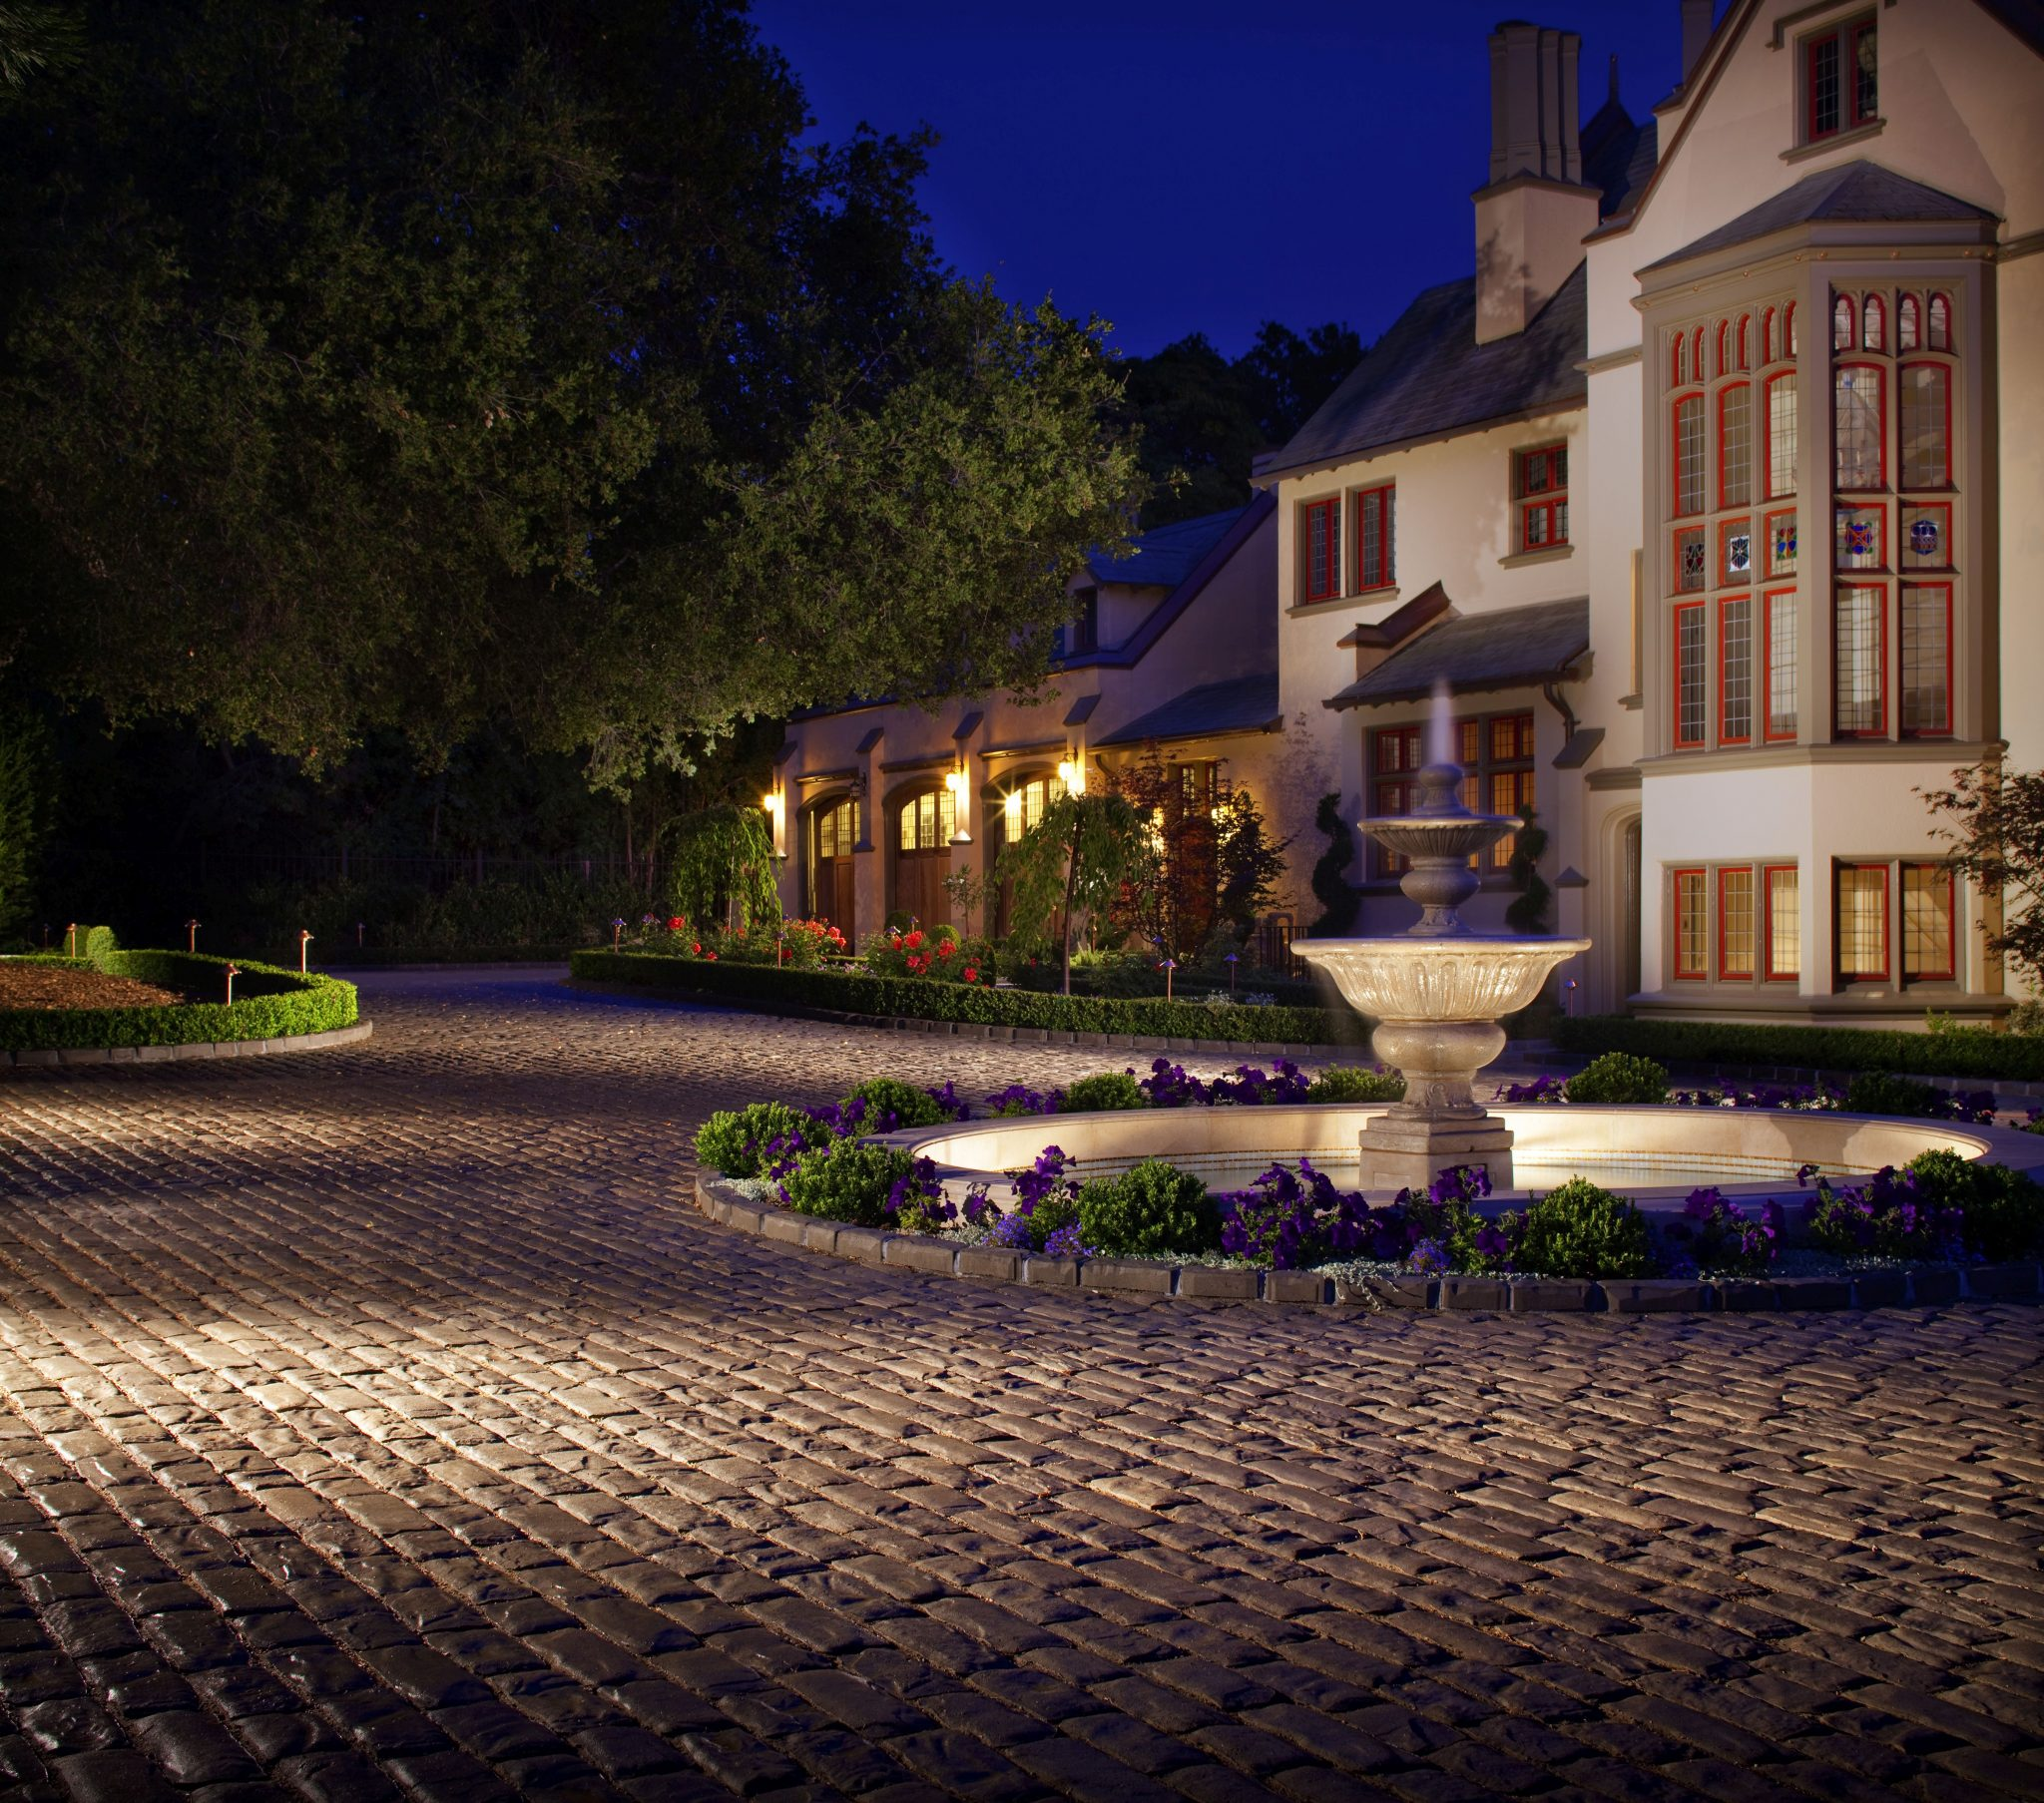 Paver Driveway with Fountain and Landscape Lights